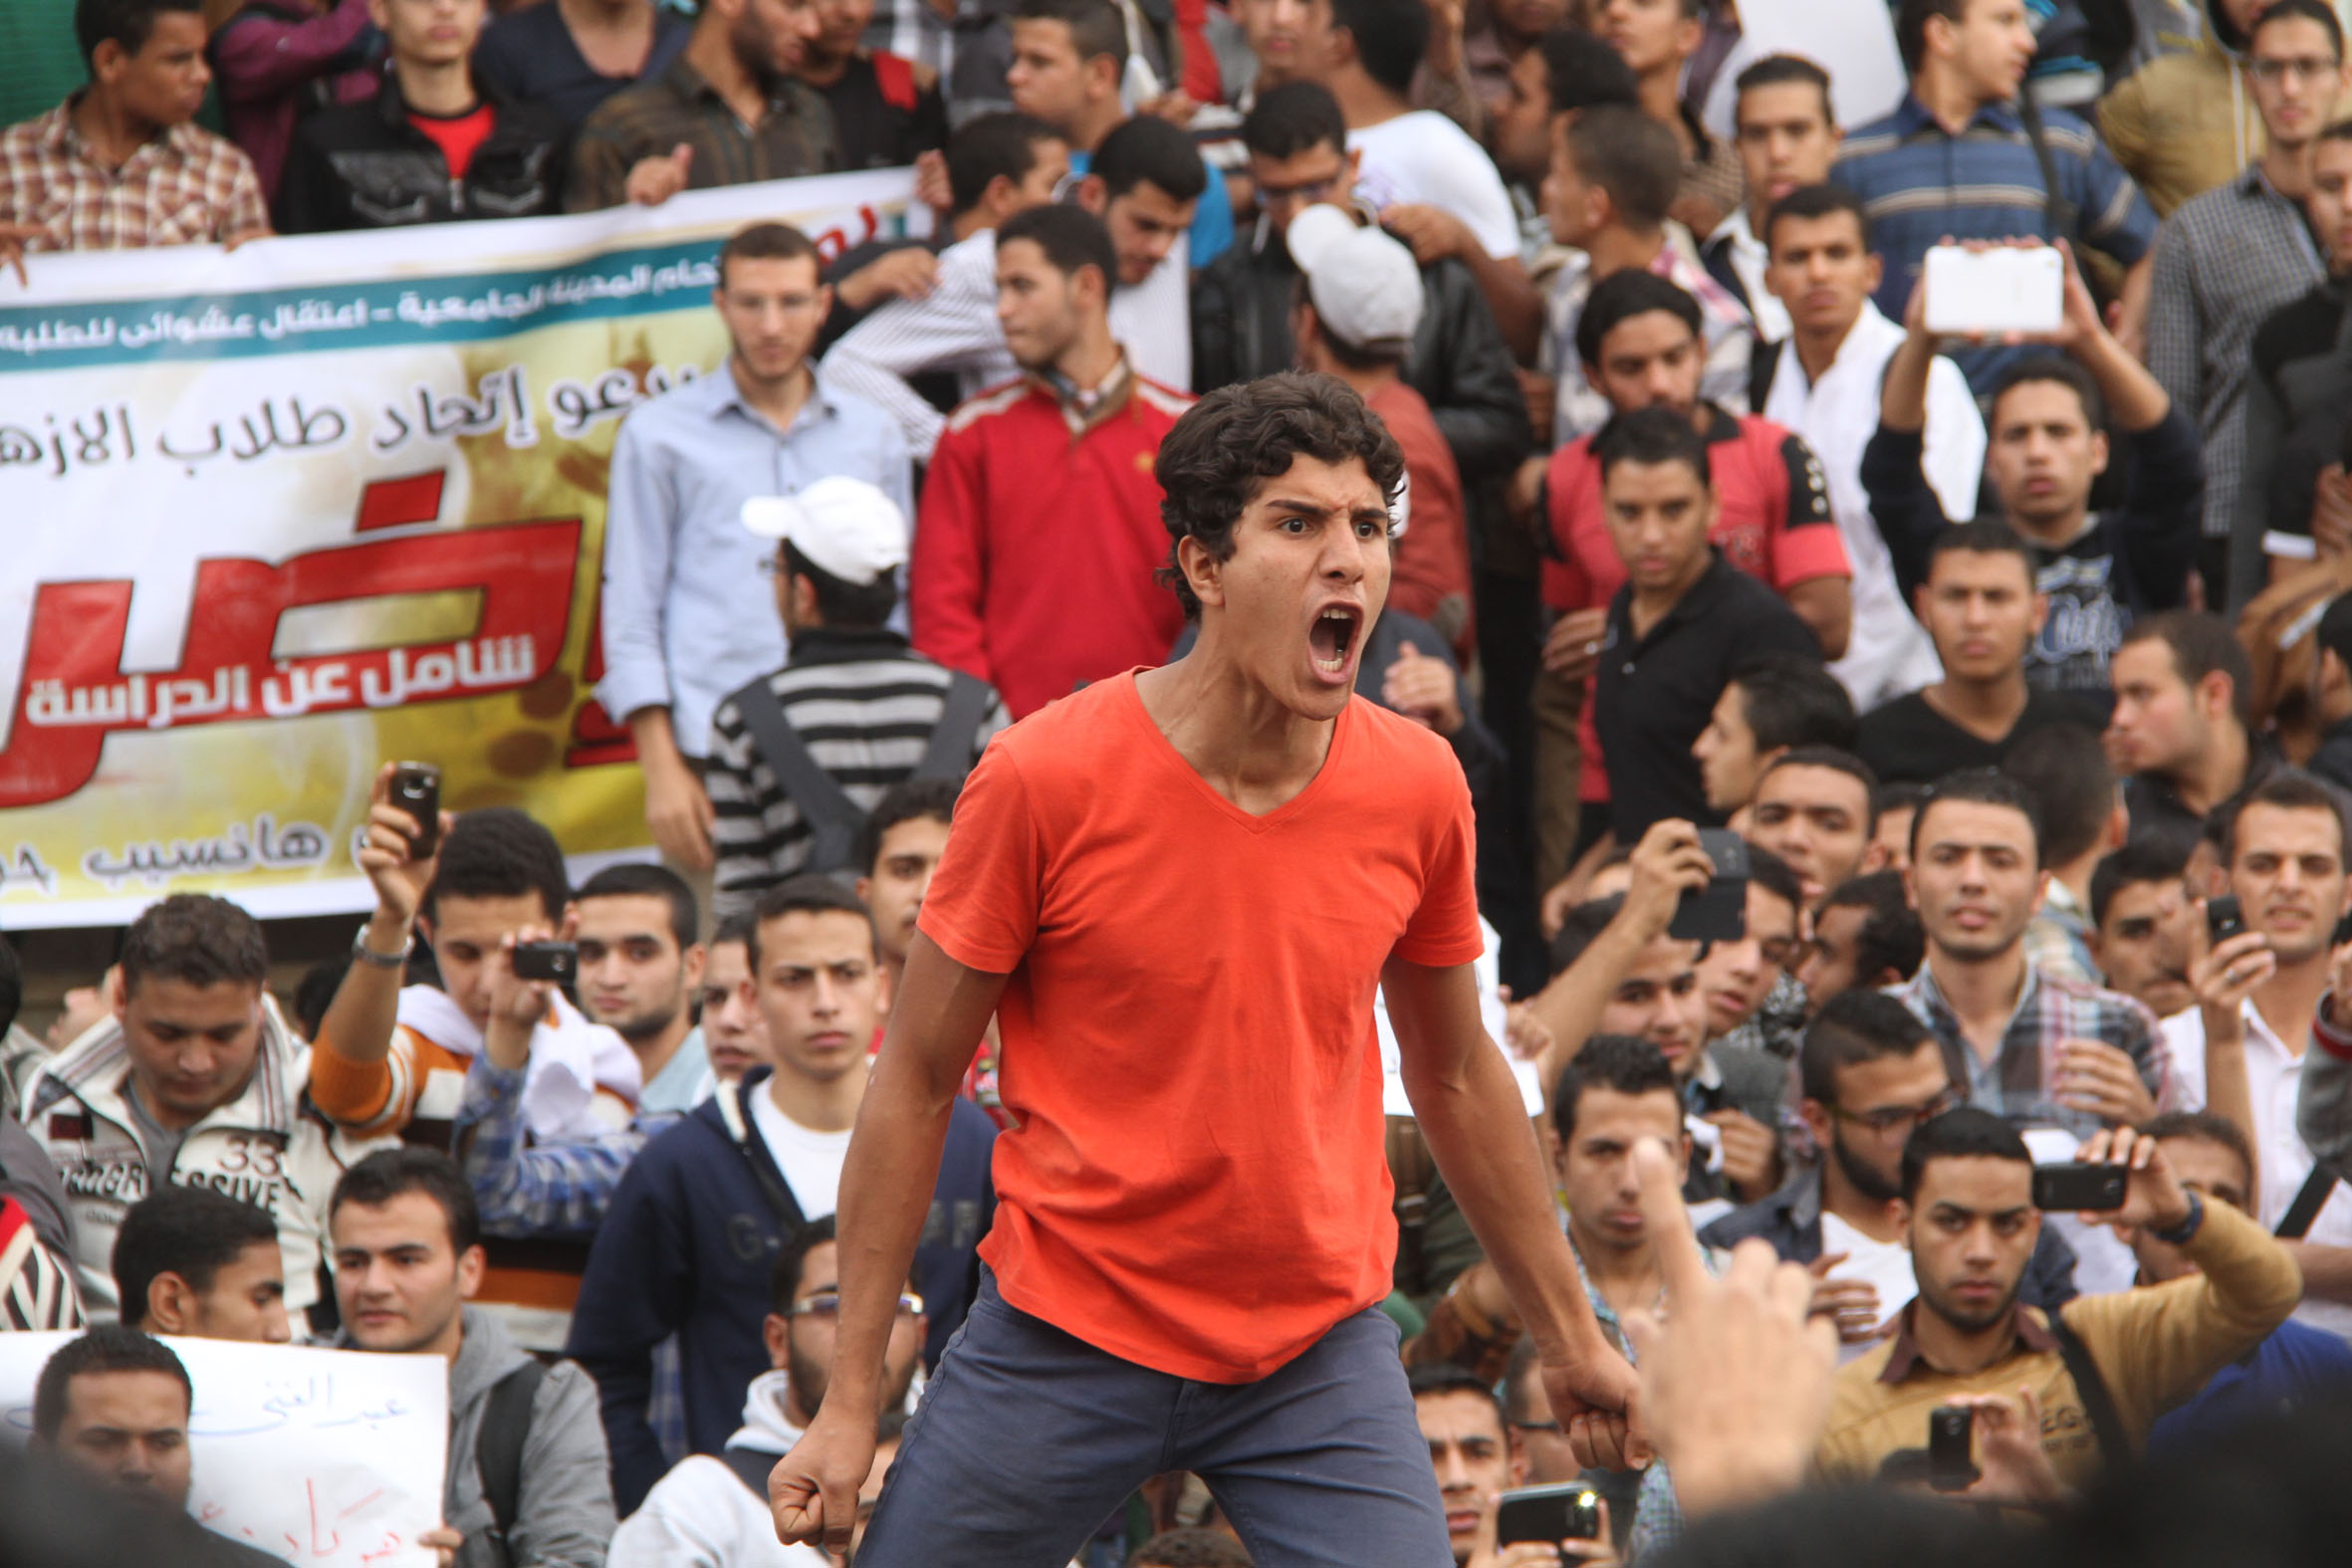 Azhar University students protest on November 2013. (Photo by Mohamed Omar\File)